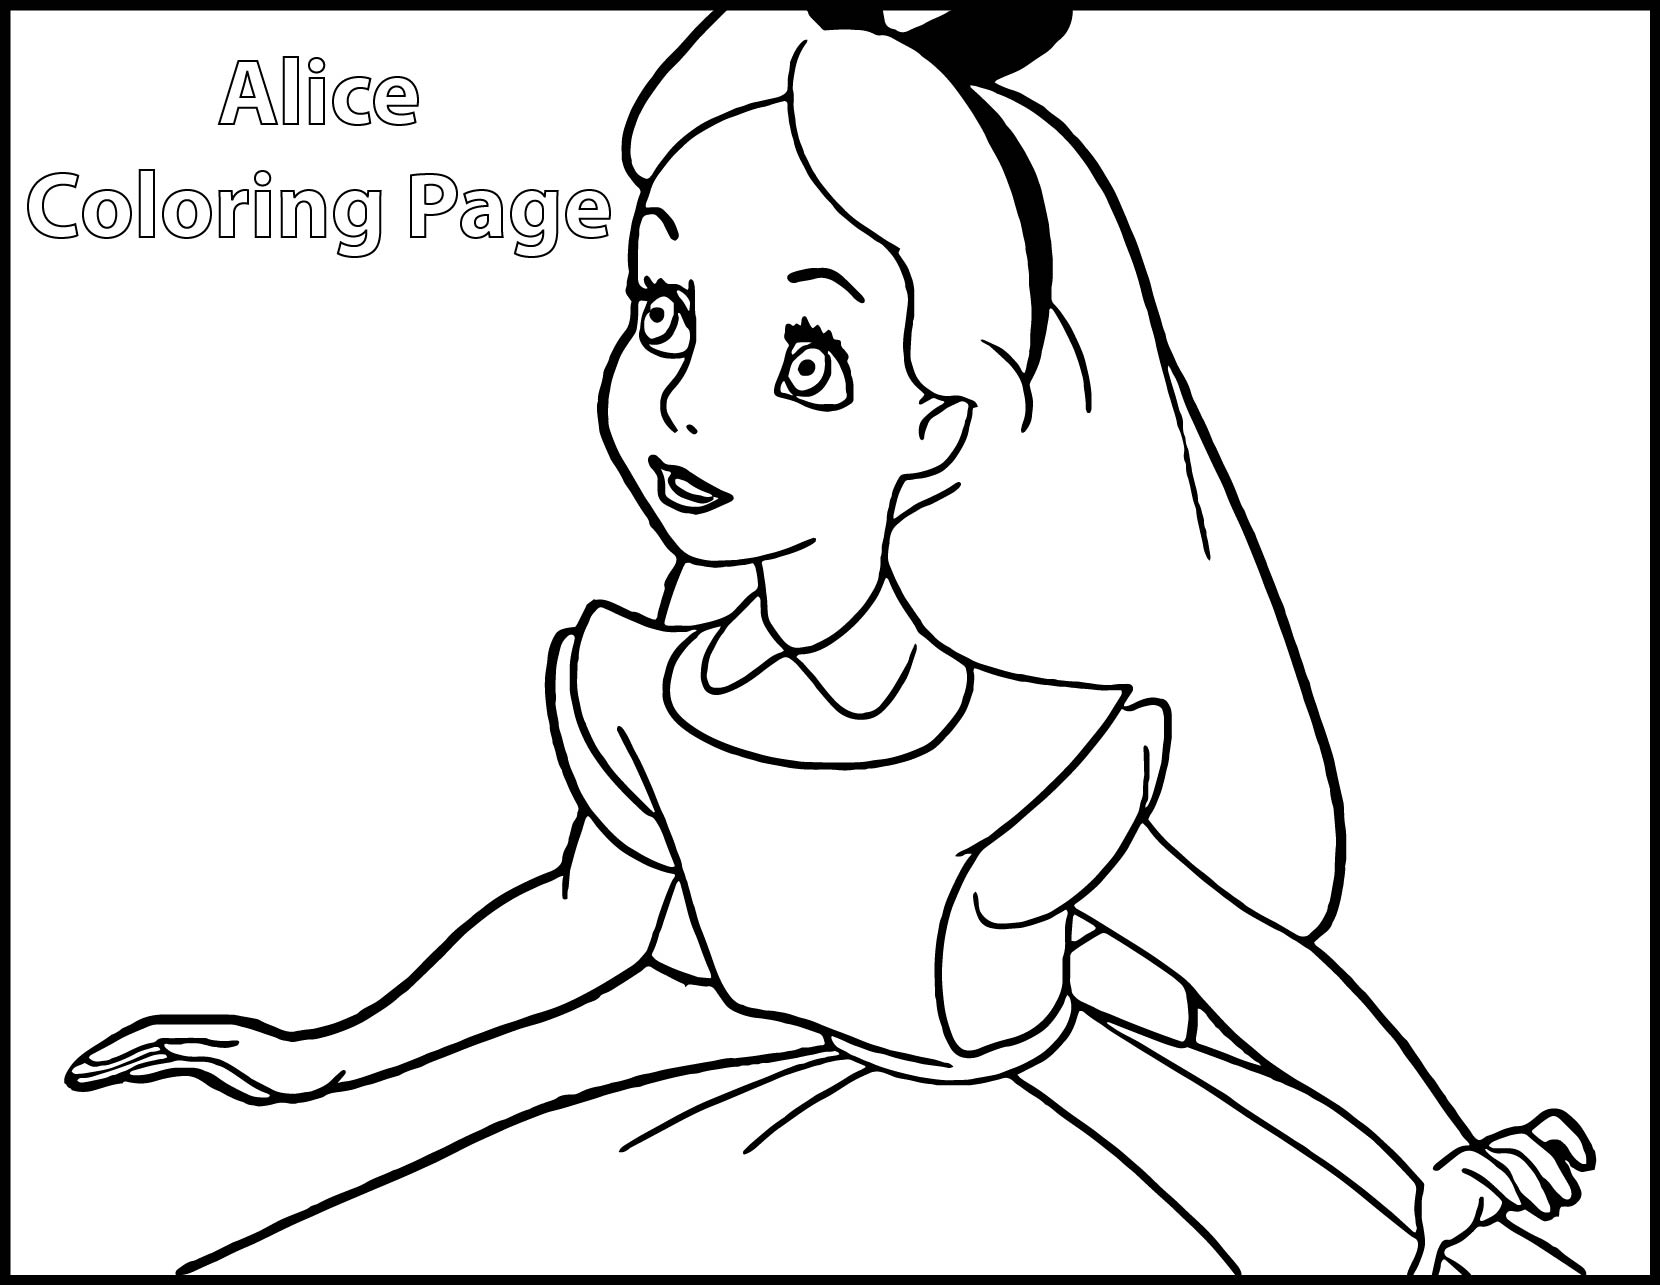 Alice-In-Wonderland-Coloring-Page-02